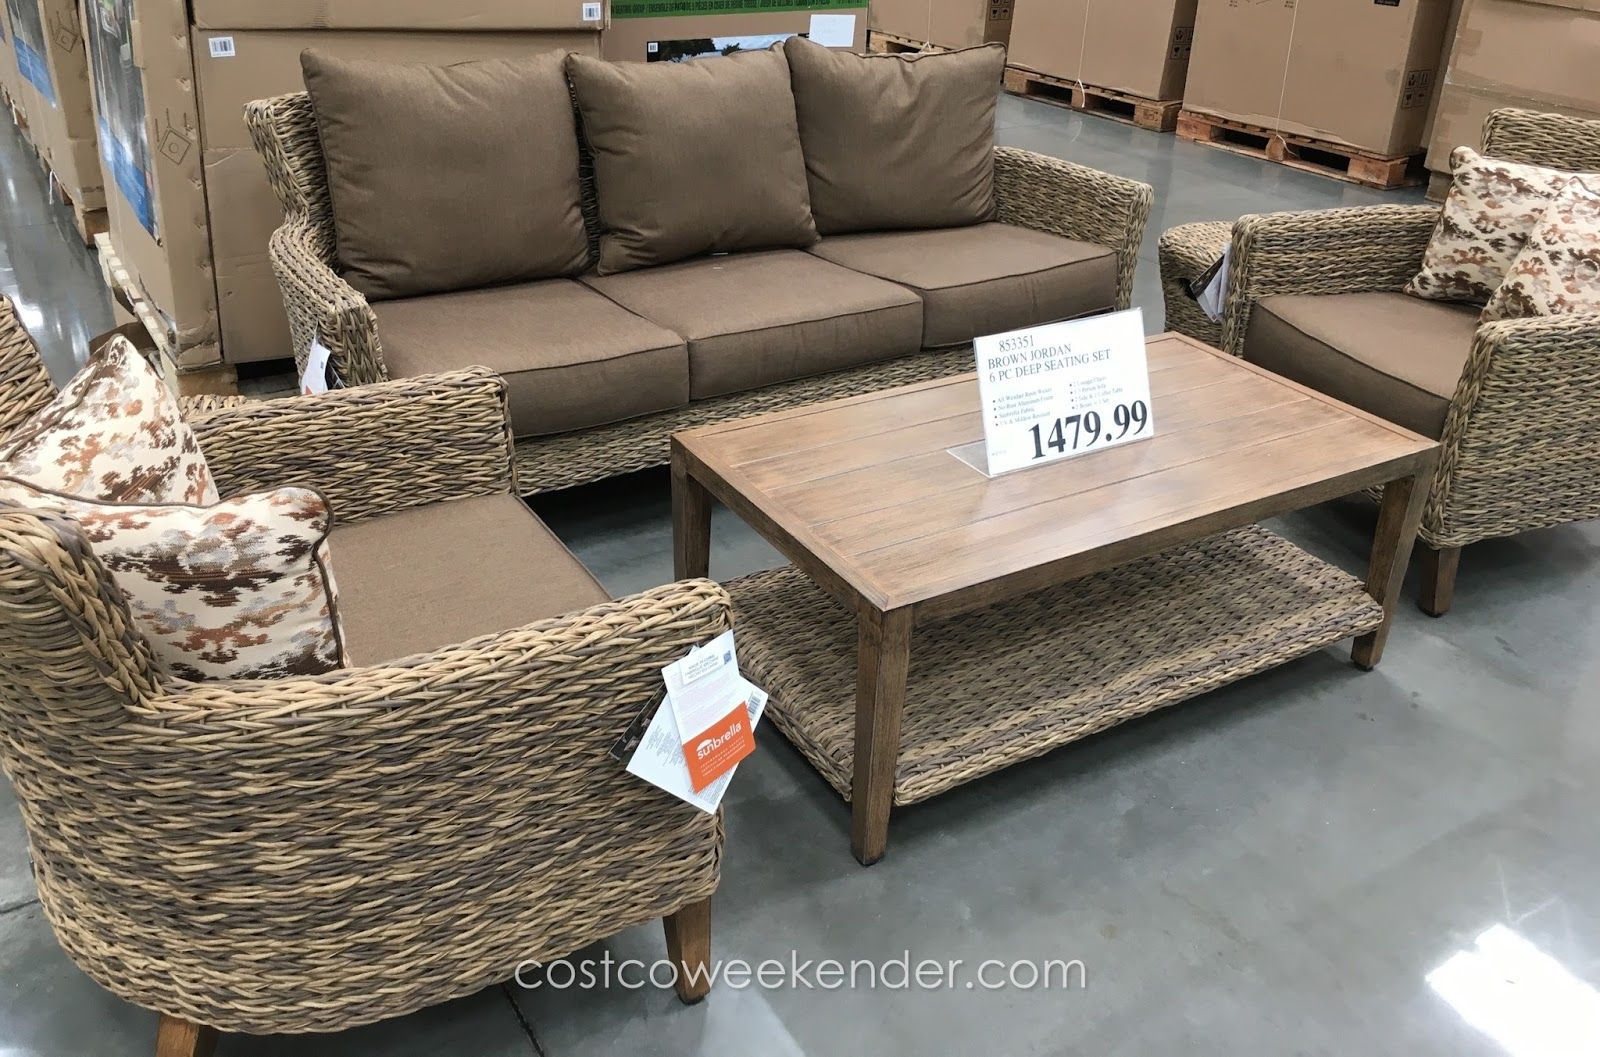 Brown Jordan Patio Furniture Costco Patio Ideas Brown Jordan